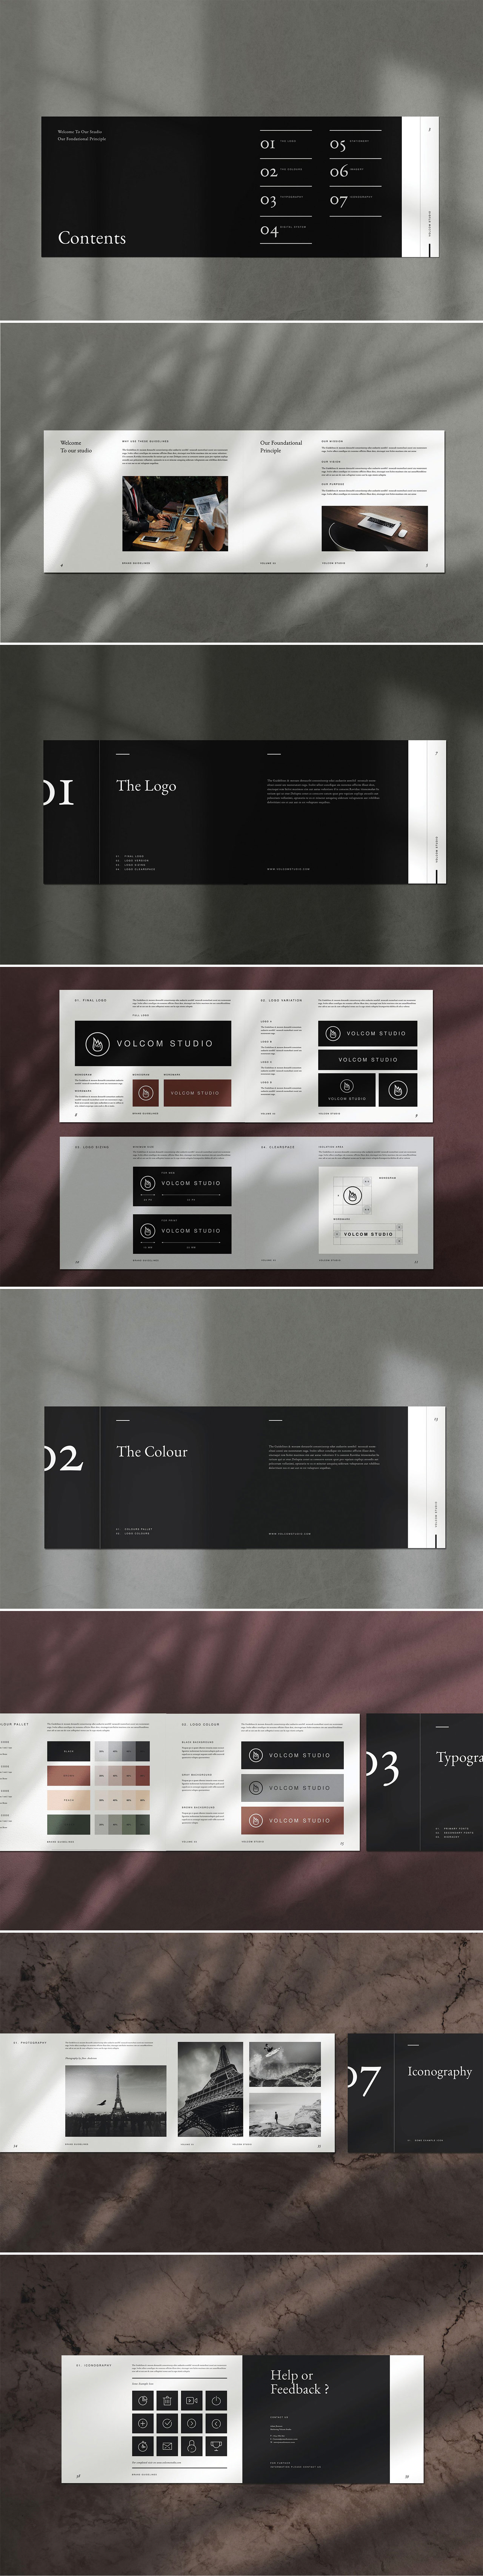 Adobe InDesign brand guidelines template by graphic design studio Occy.